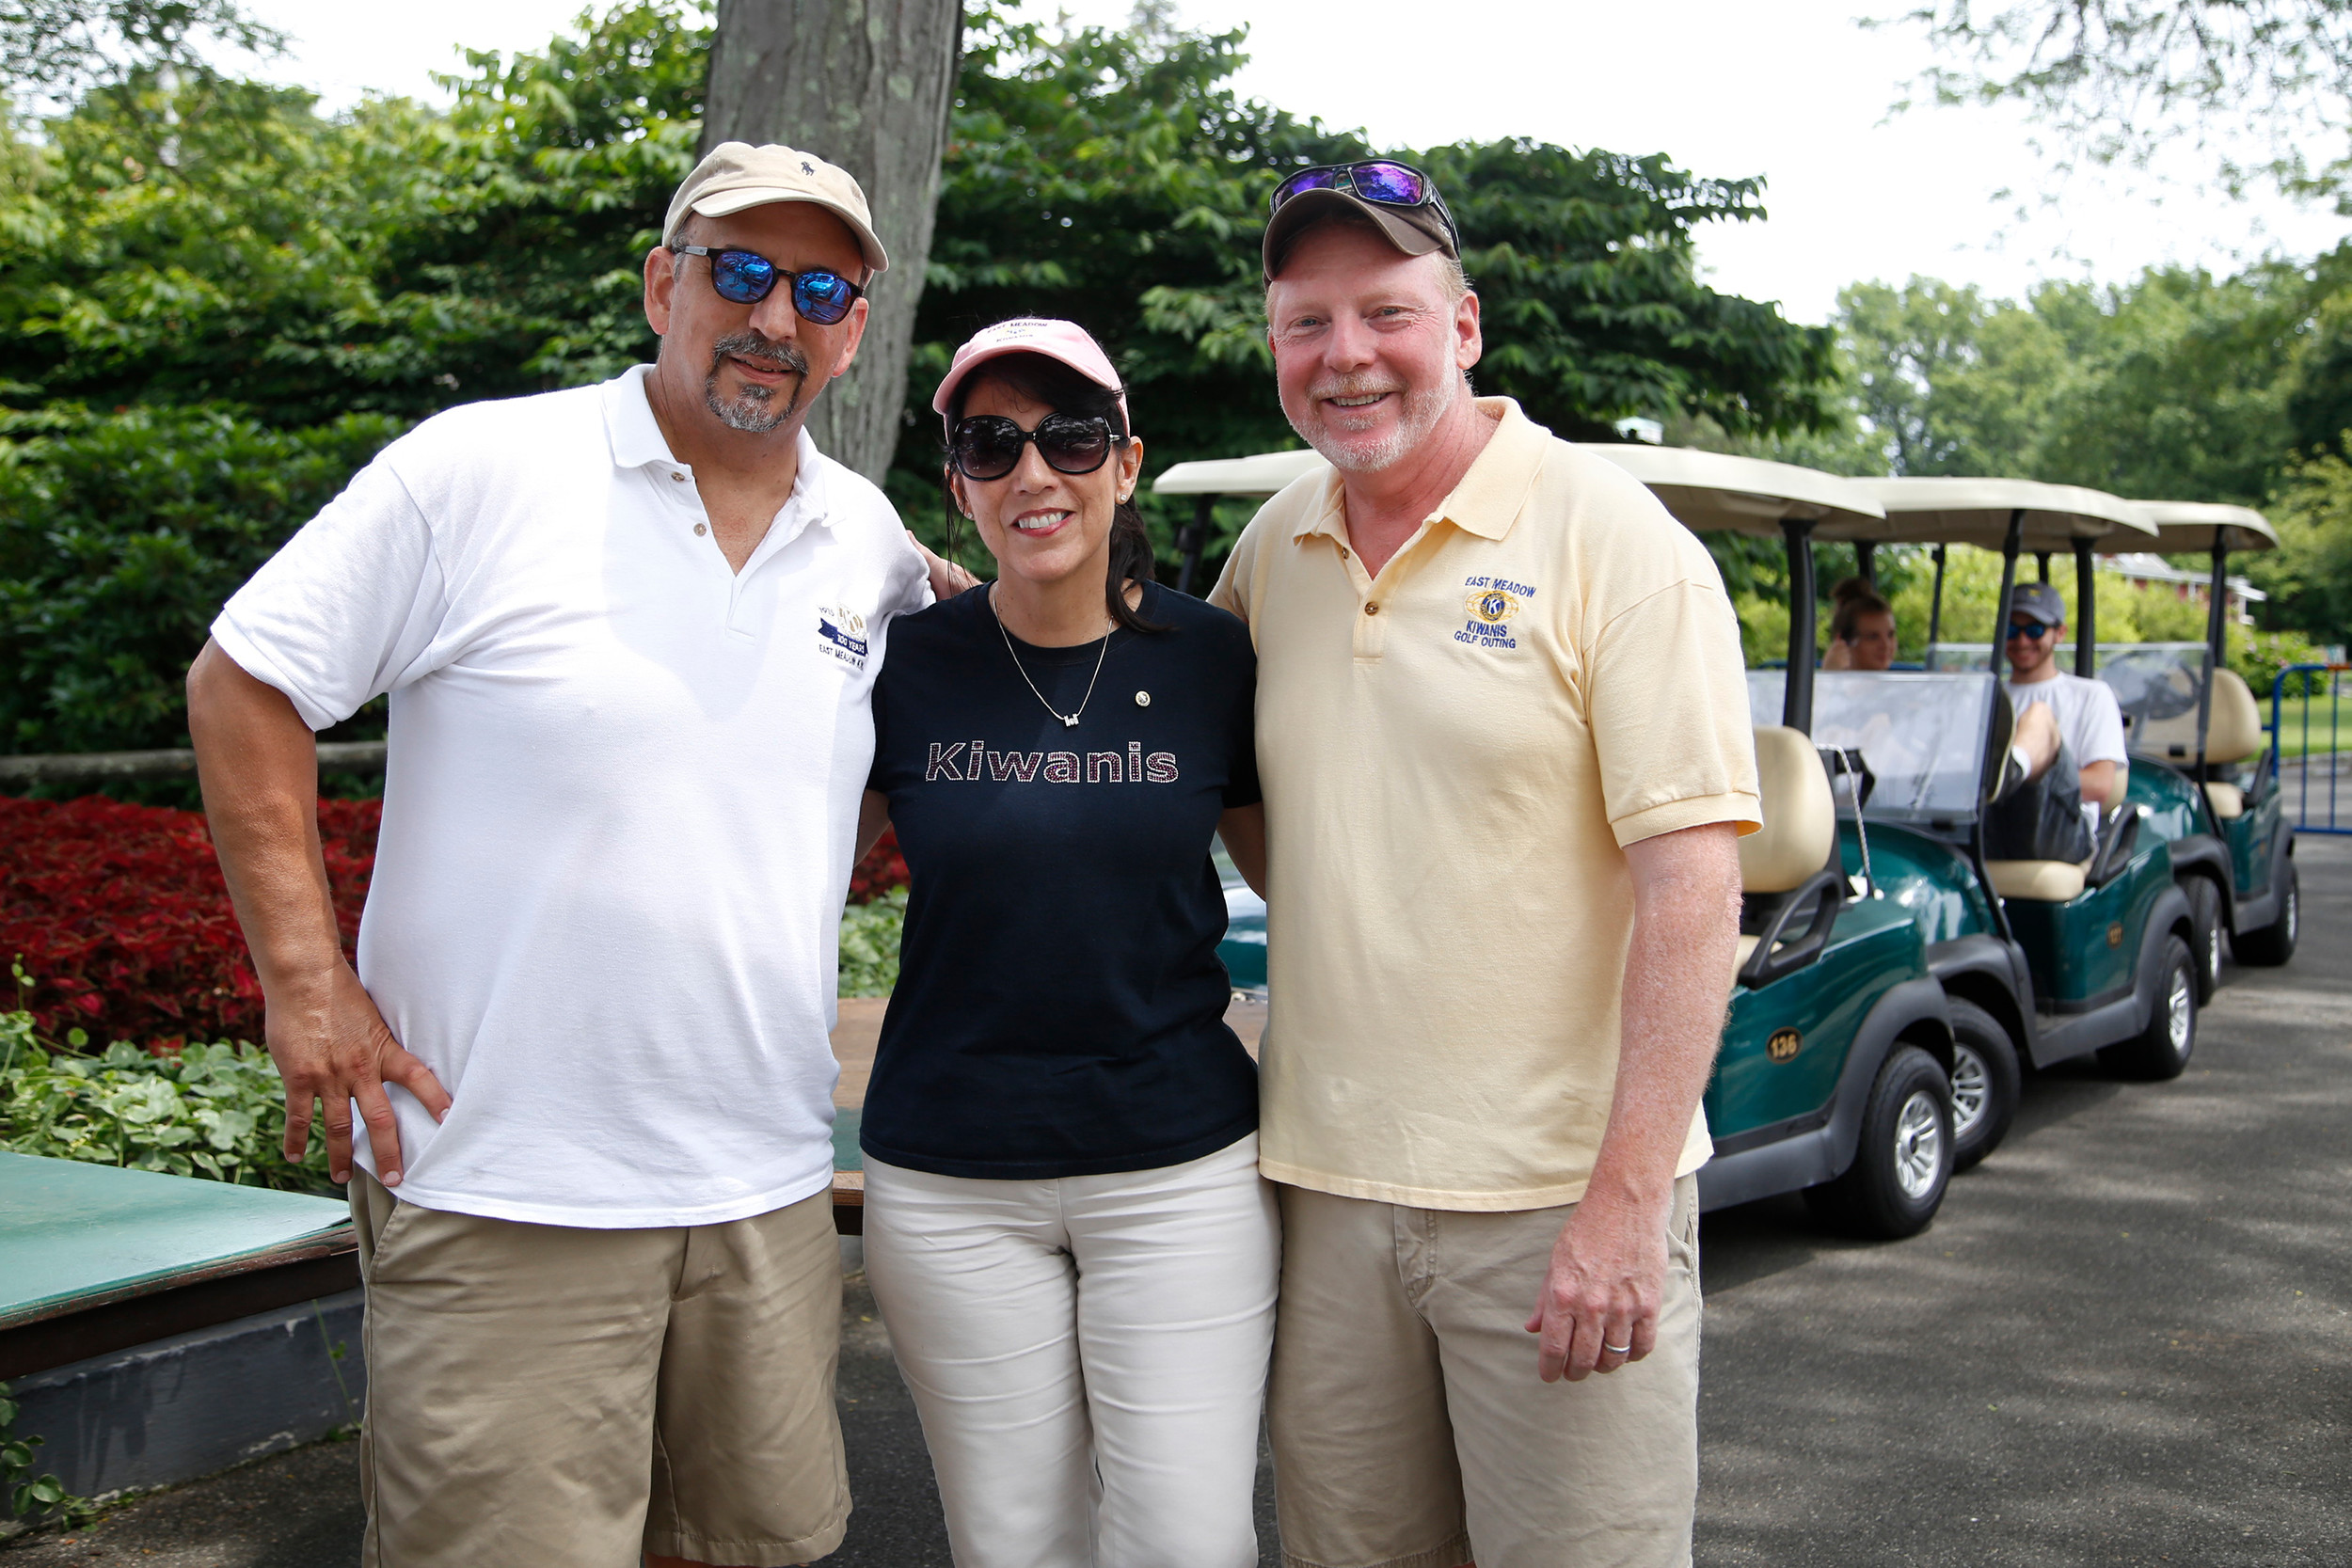 The Annual Steven J. Eisman Memorial Golf Outing organizers Alan Beinhacker, Debbie Coates and Mike Litzner welcomed guests as they arrived on July 17.